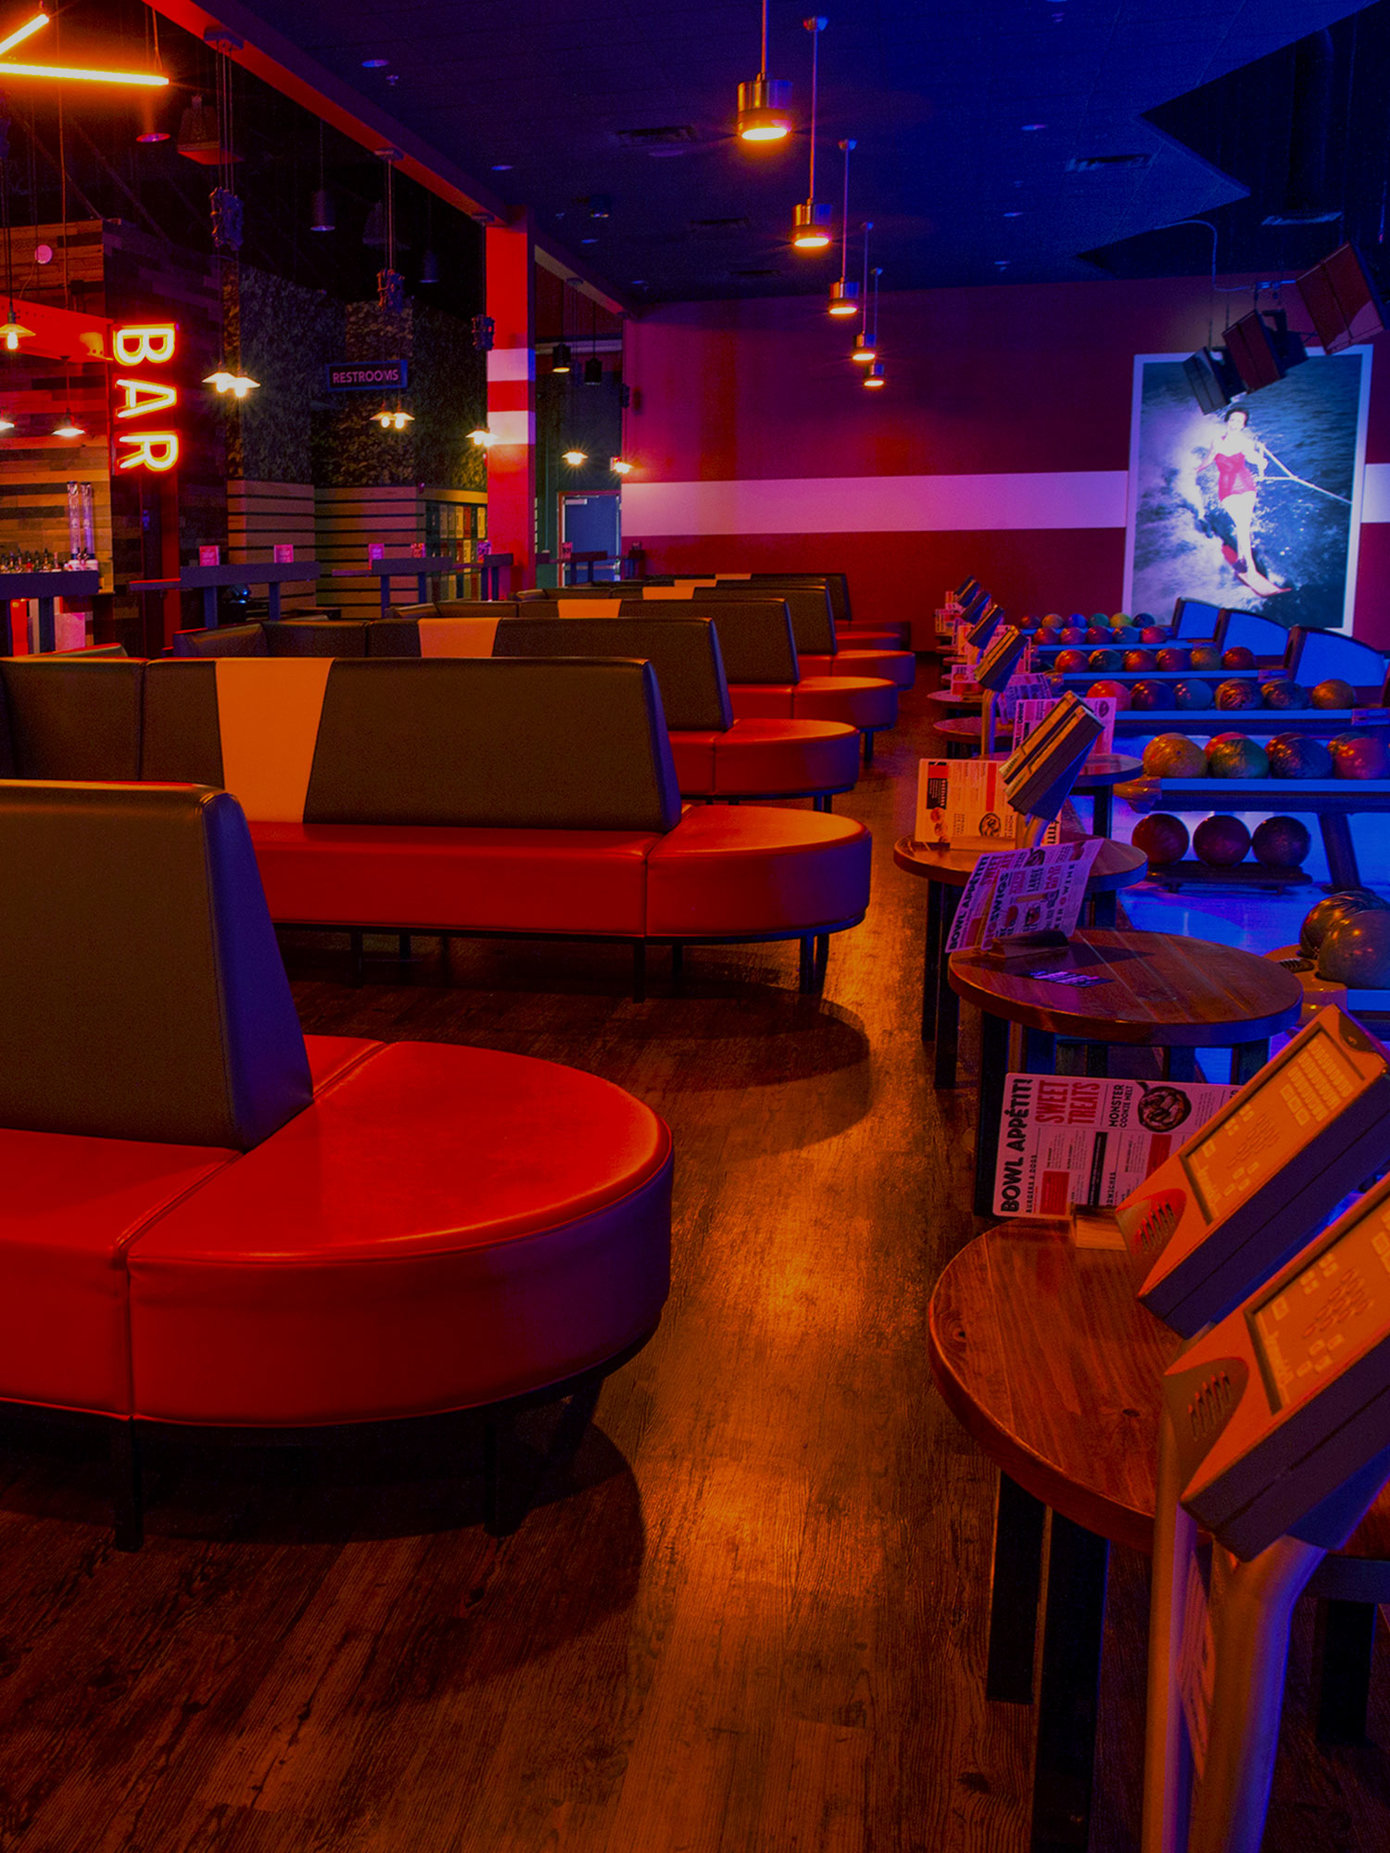 Bowling lanes and seating at Bowlero St. Peters